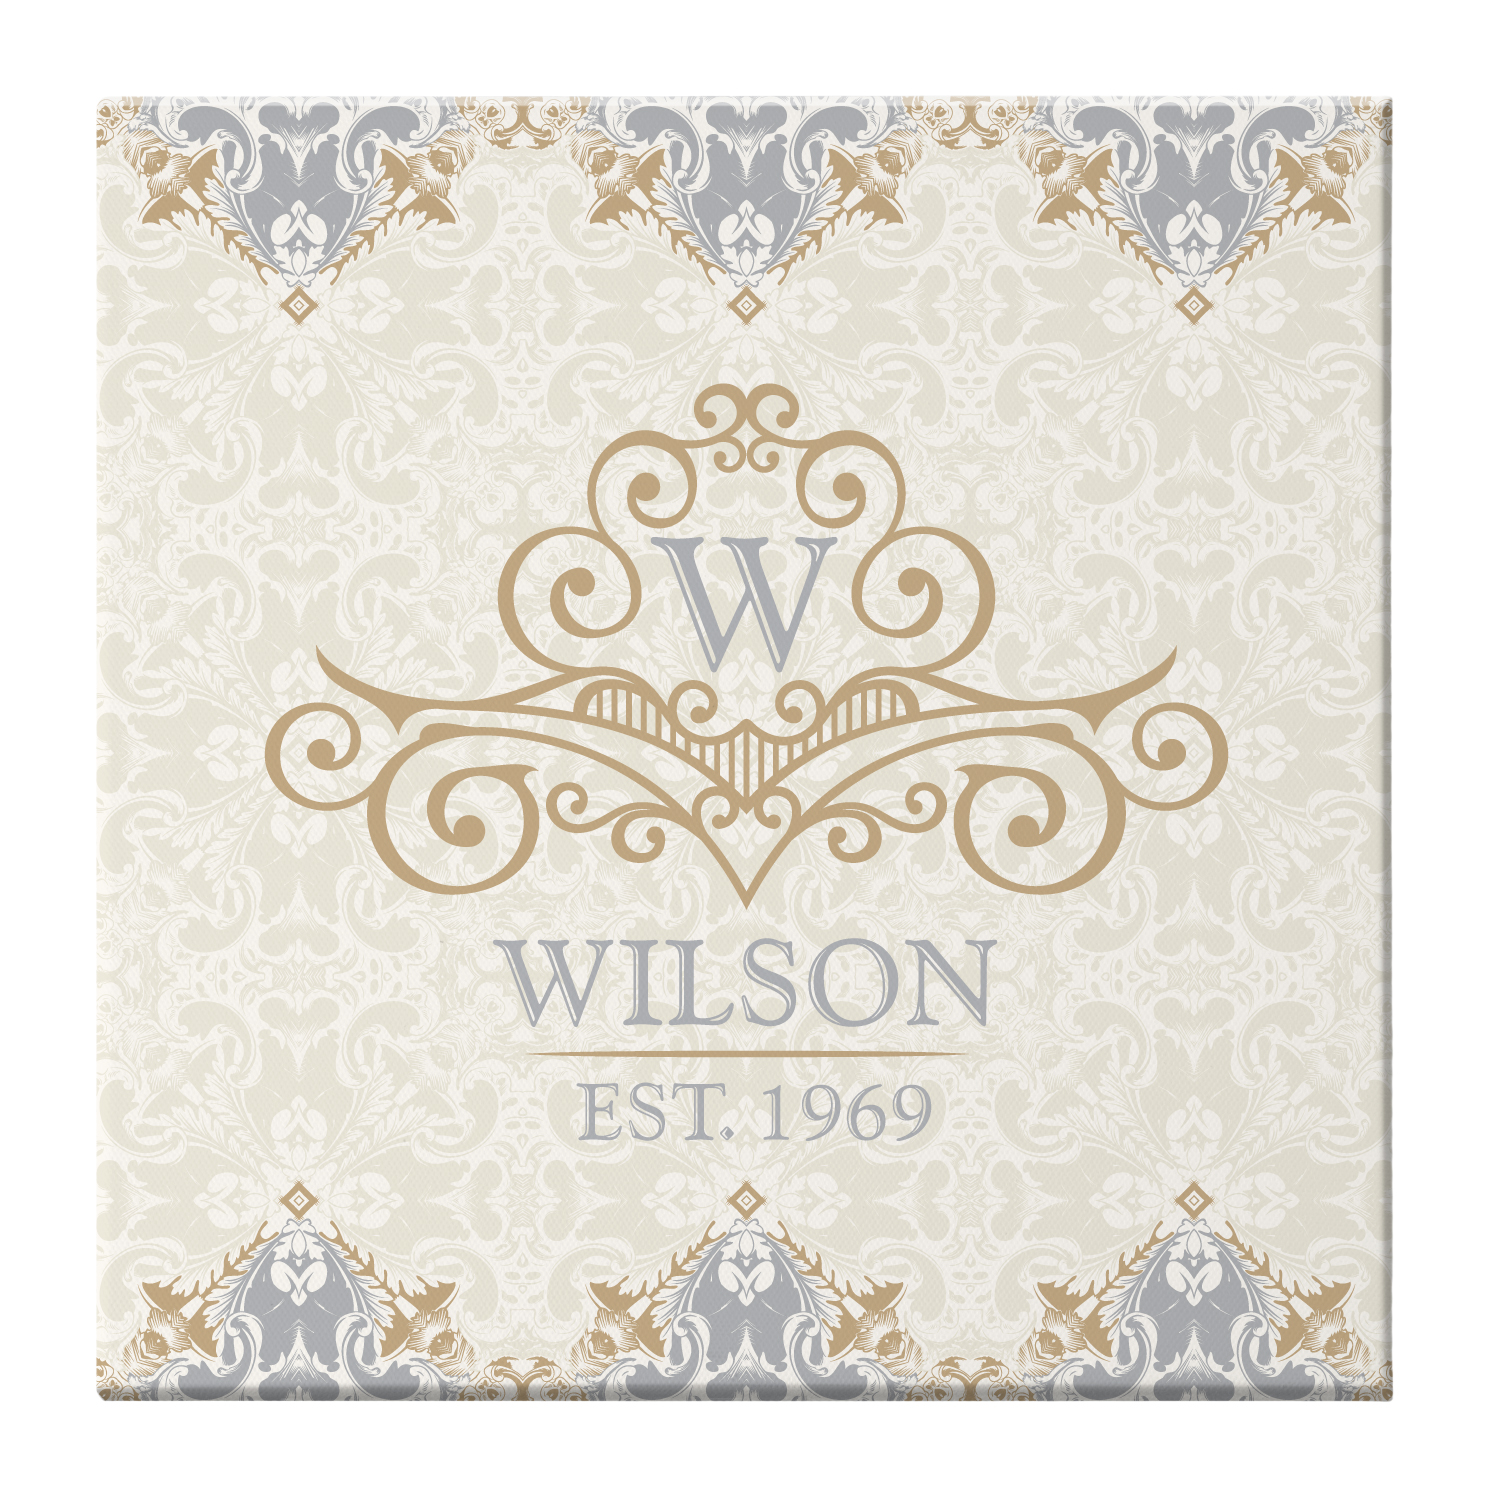 Personalized Elegant Monogram & Name Canvas - Available in 2 Colors and 2 Sizes